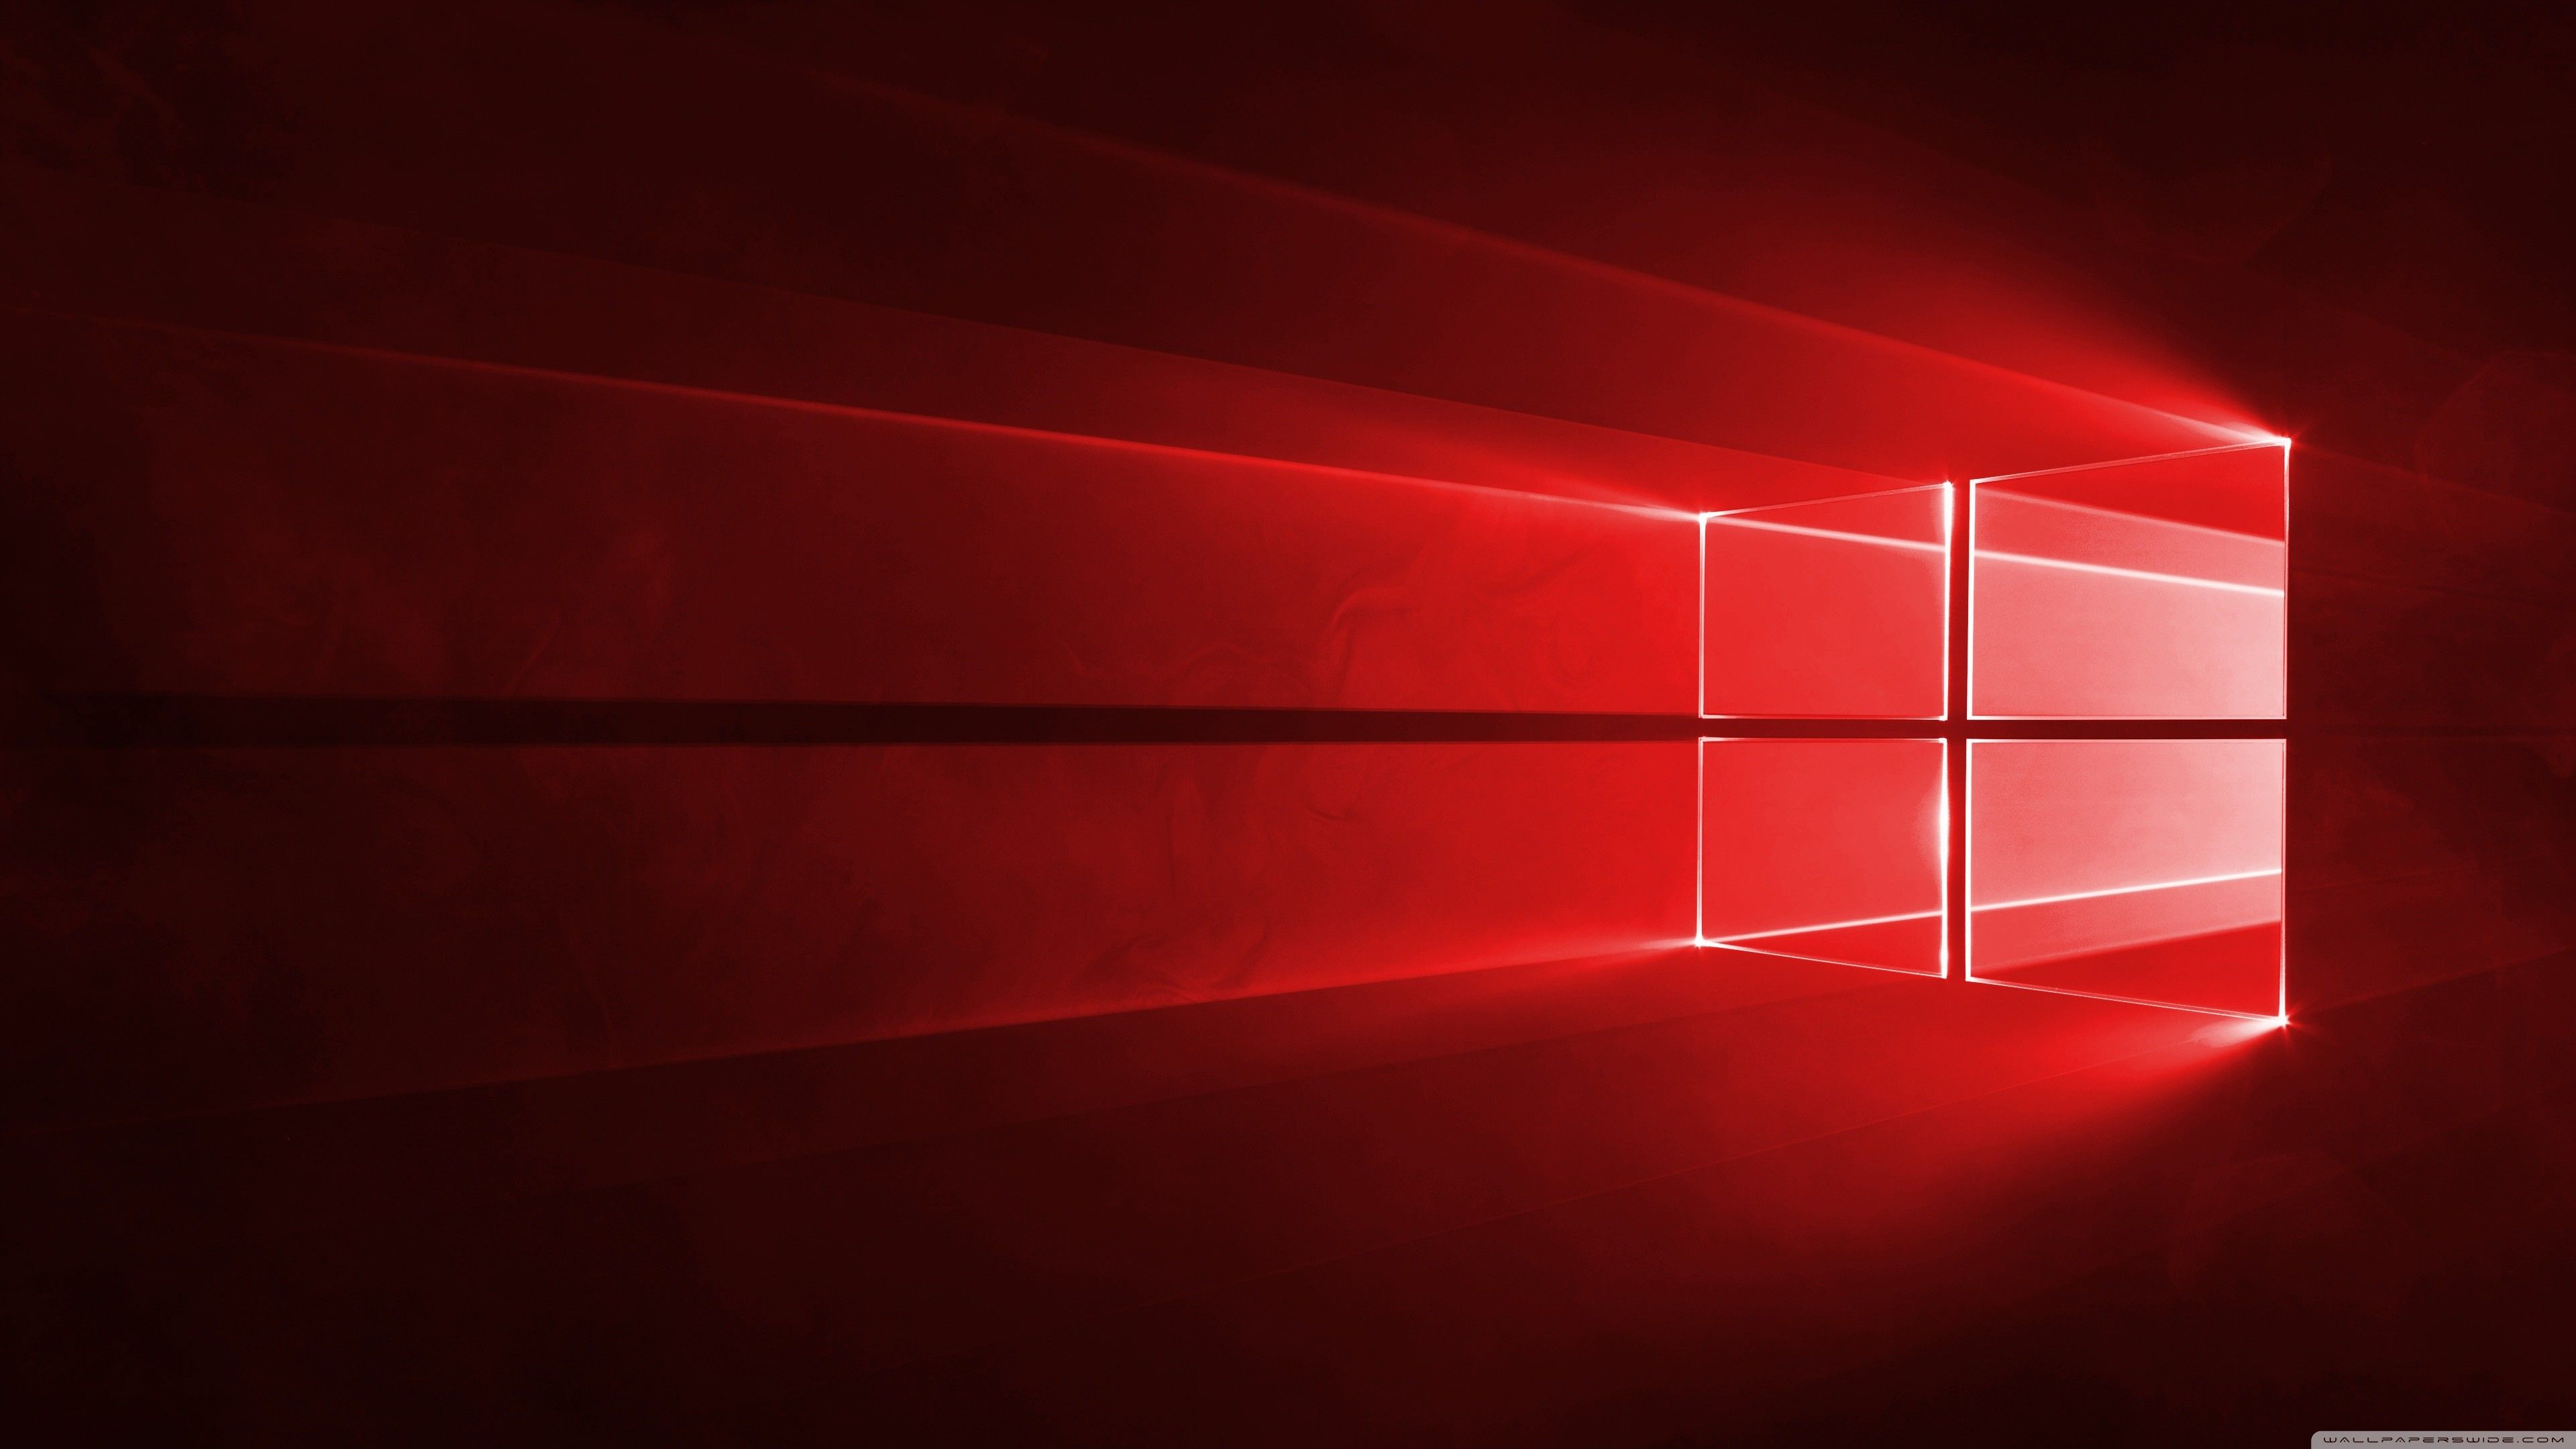 3840x2160 Windows 10 Red In 4k Hd Wide Wallpaper For Widescreen Windows Wallpaper Red Windows Wallpaper Windows 10